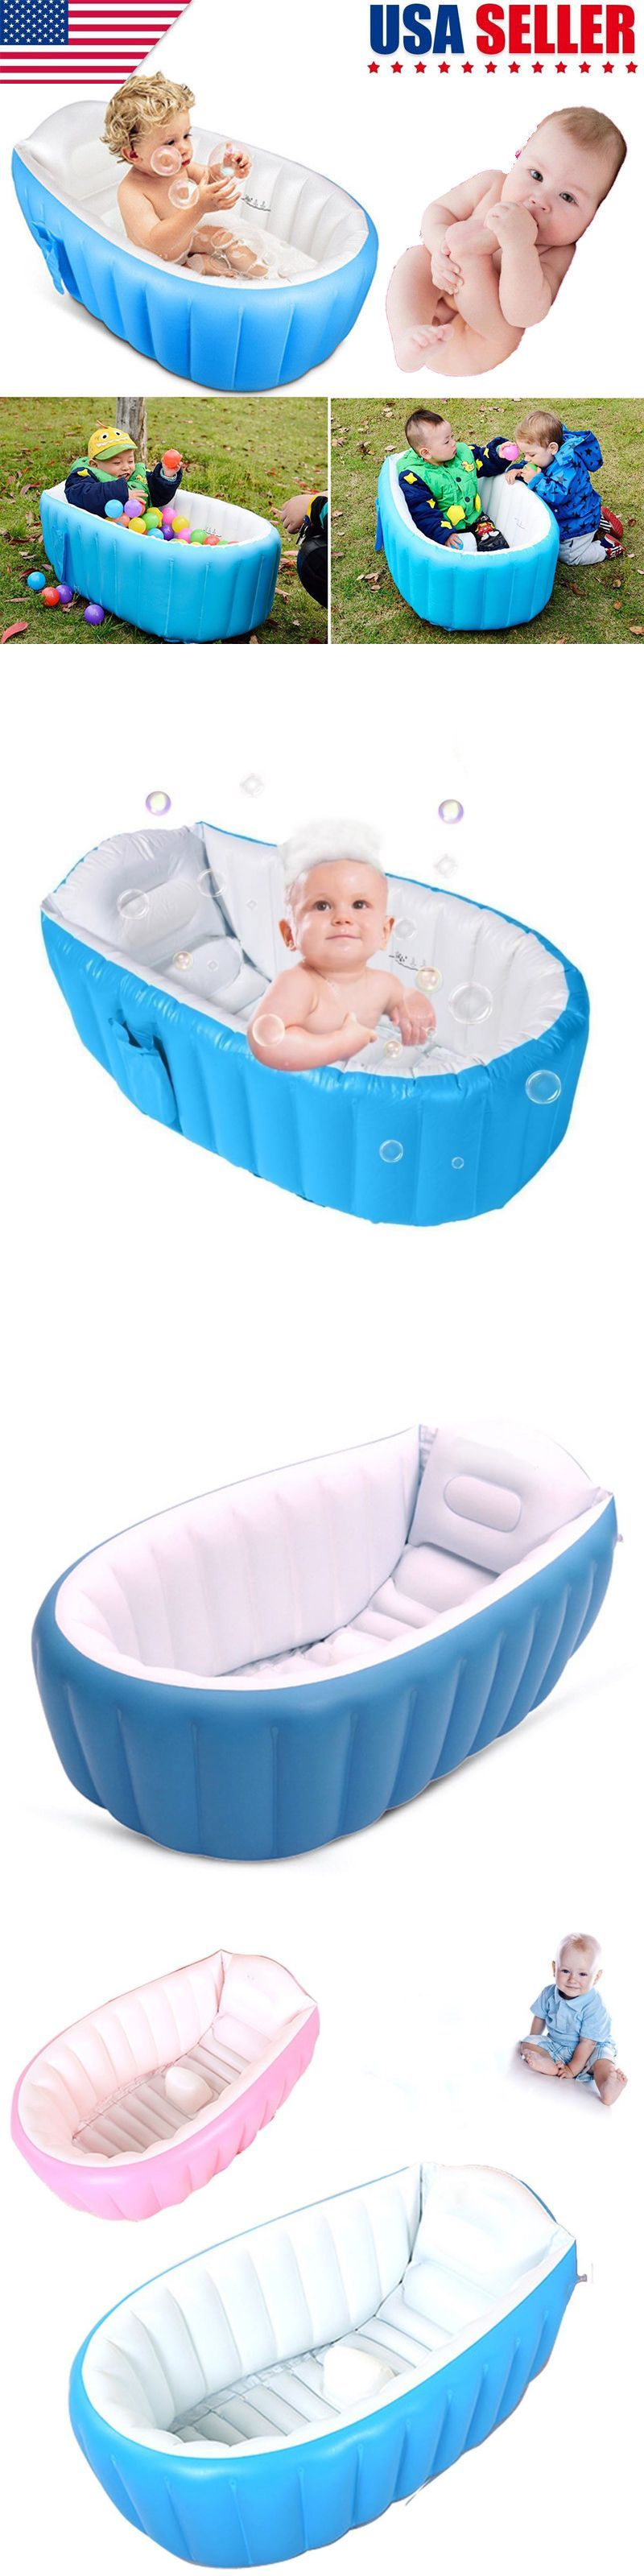 Bath Tubs 113814: Baby Infant Inflatable Bath Tub Seat Mommy Helper ...